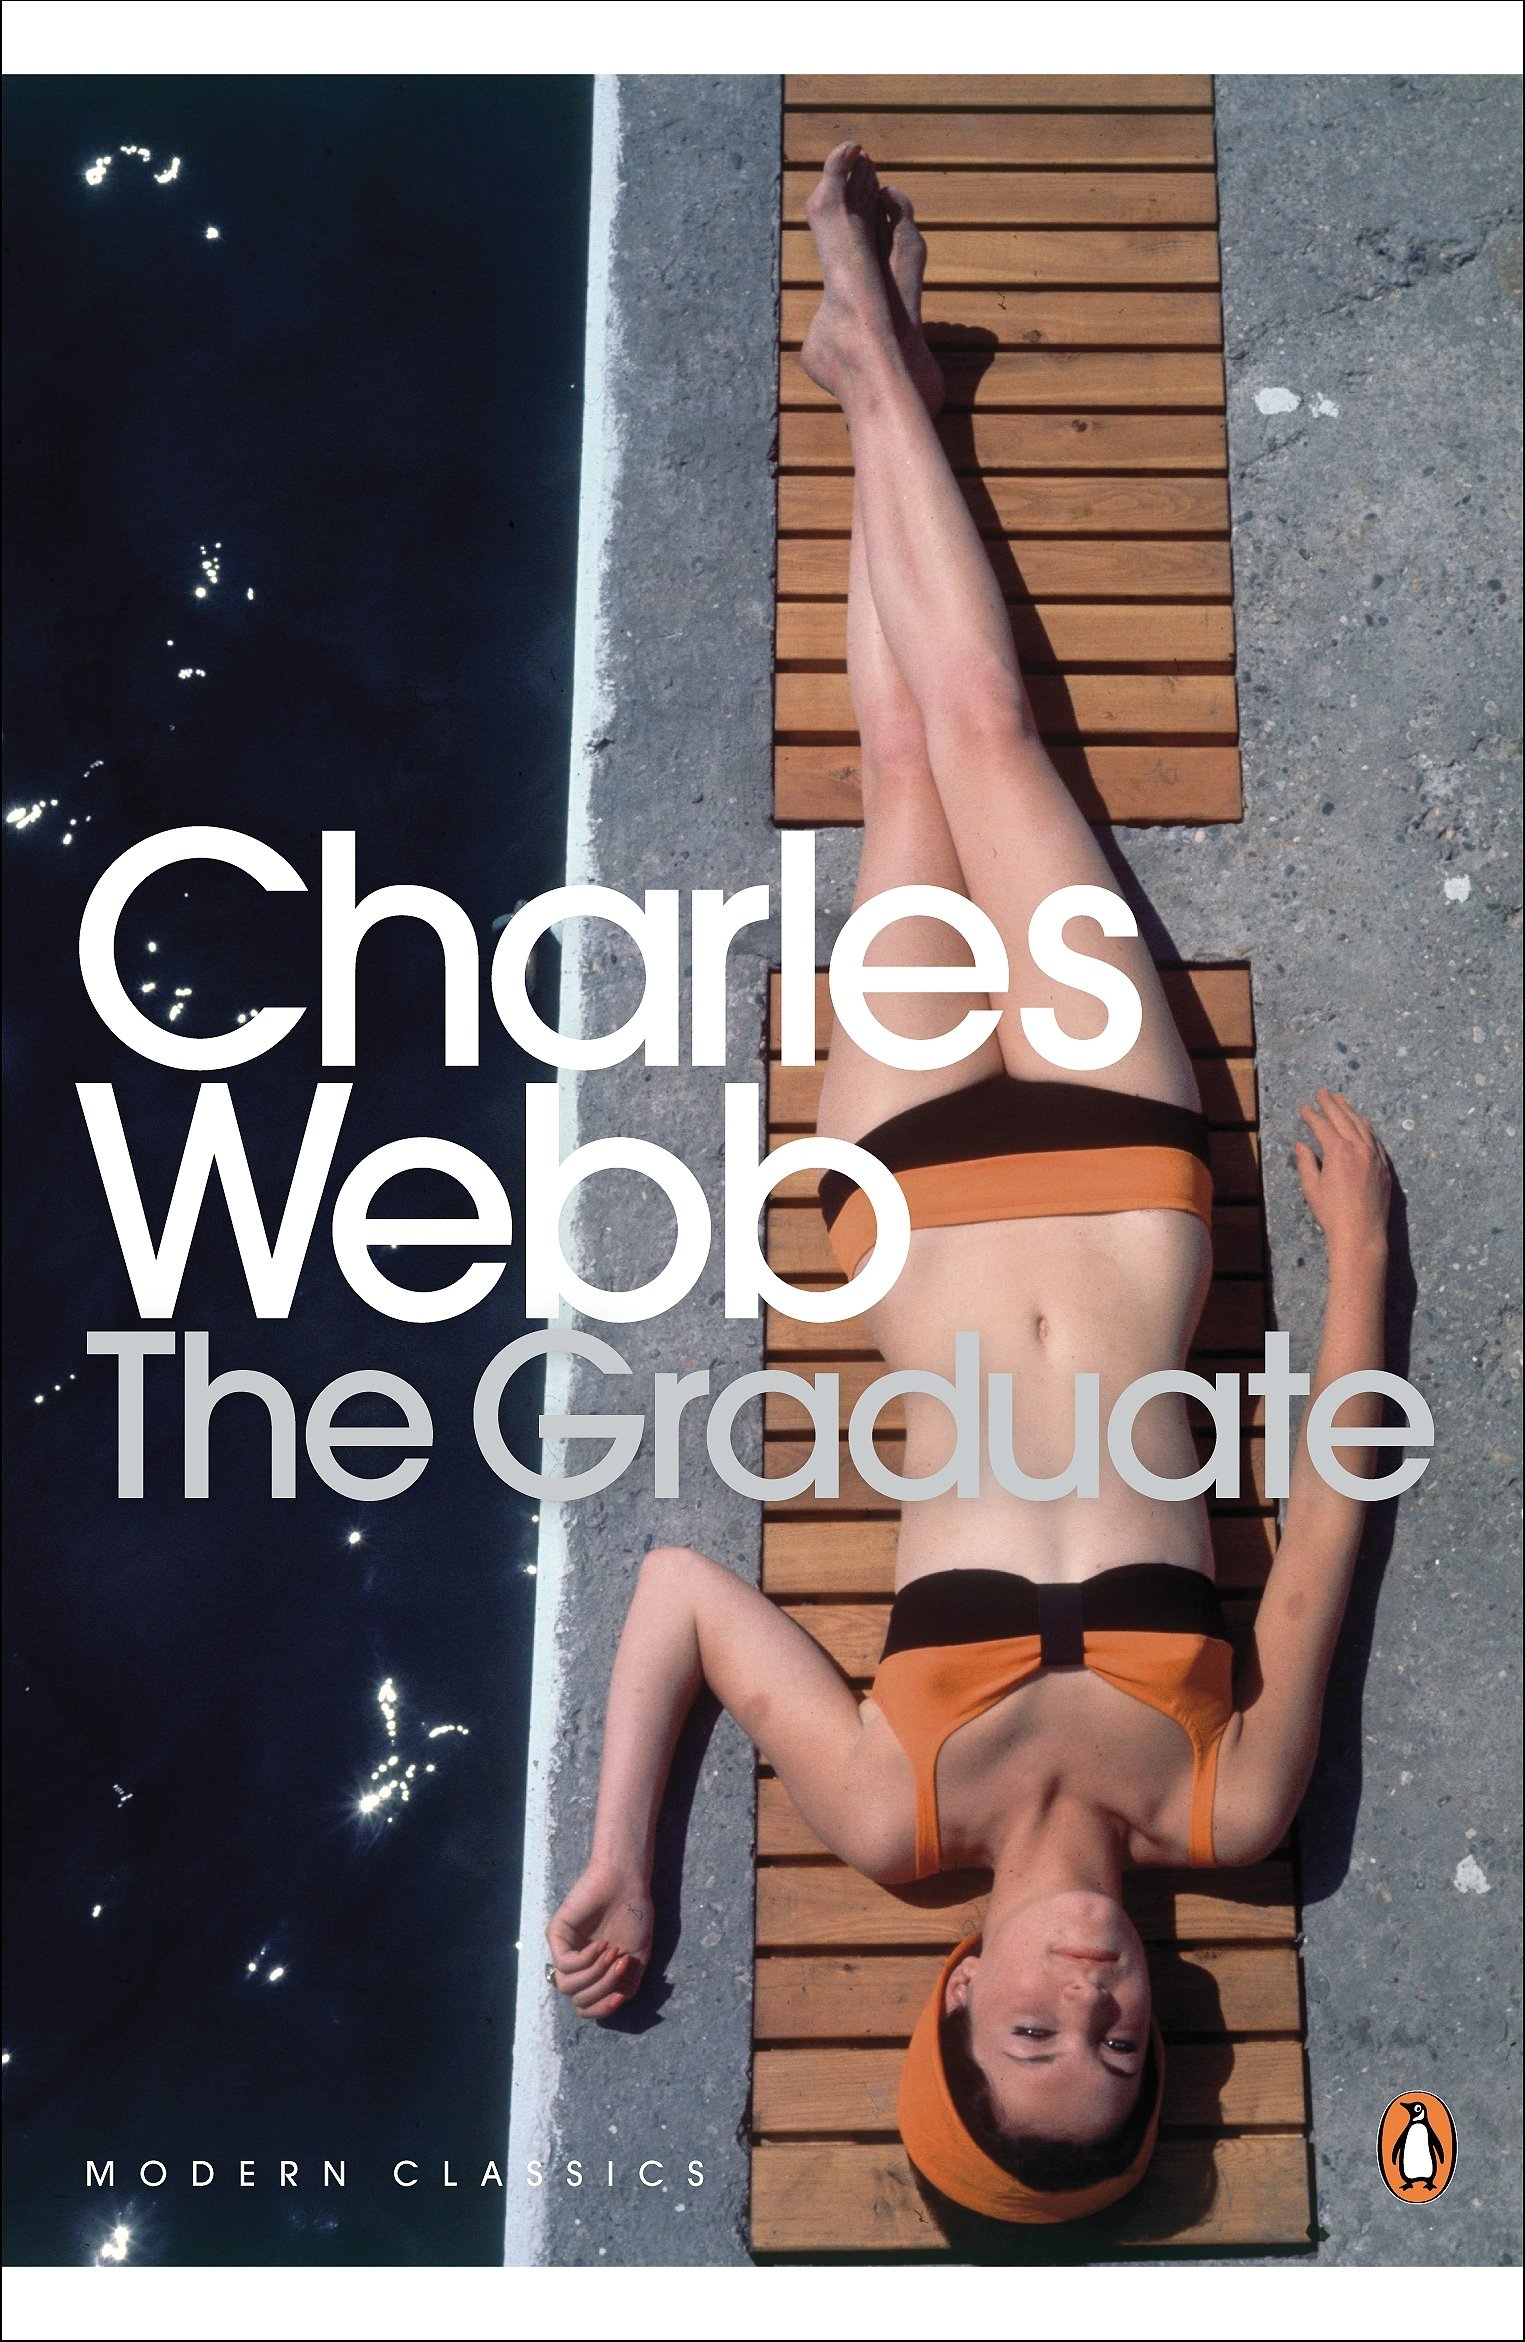 Image result for charles webb the graduate